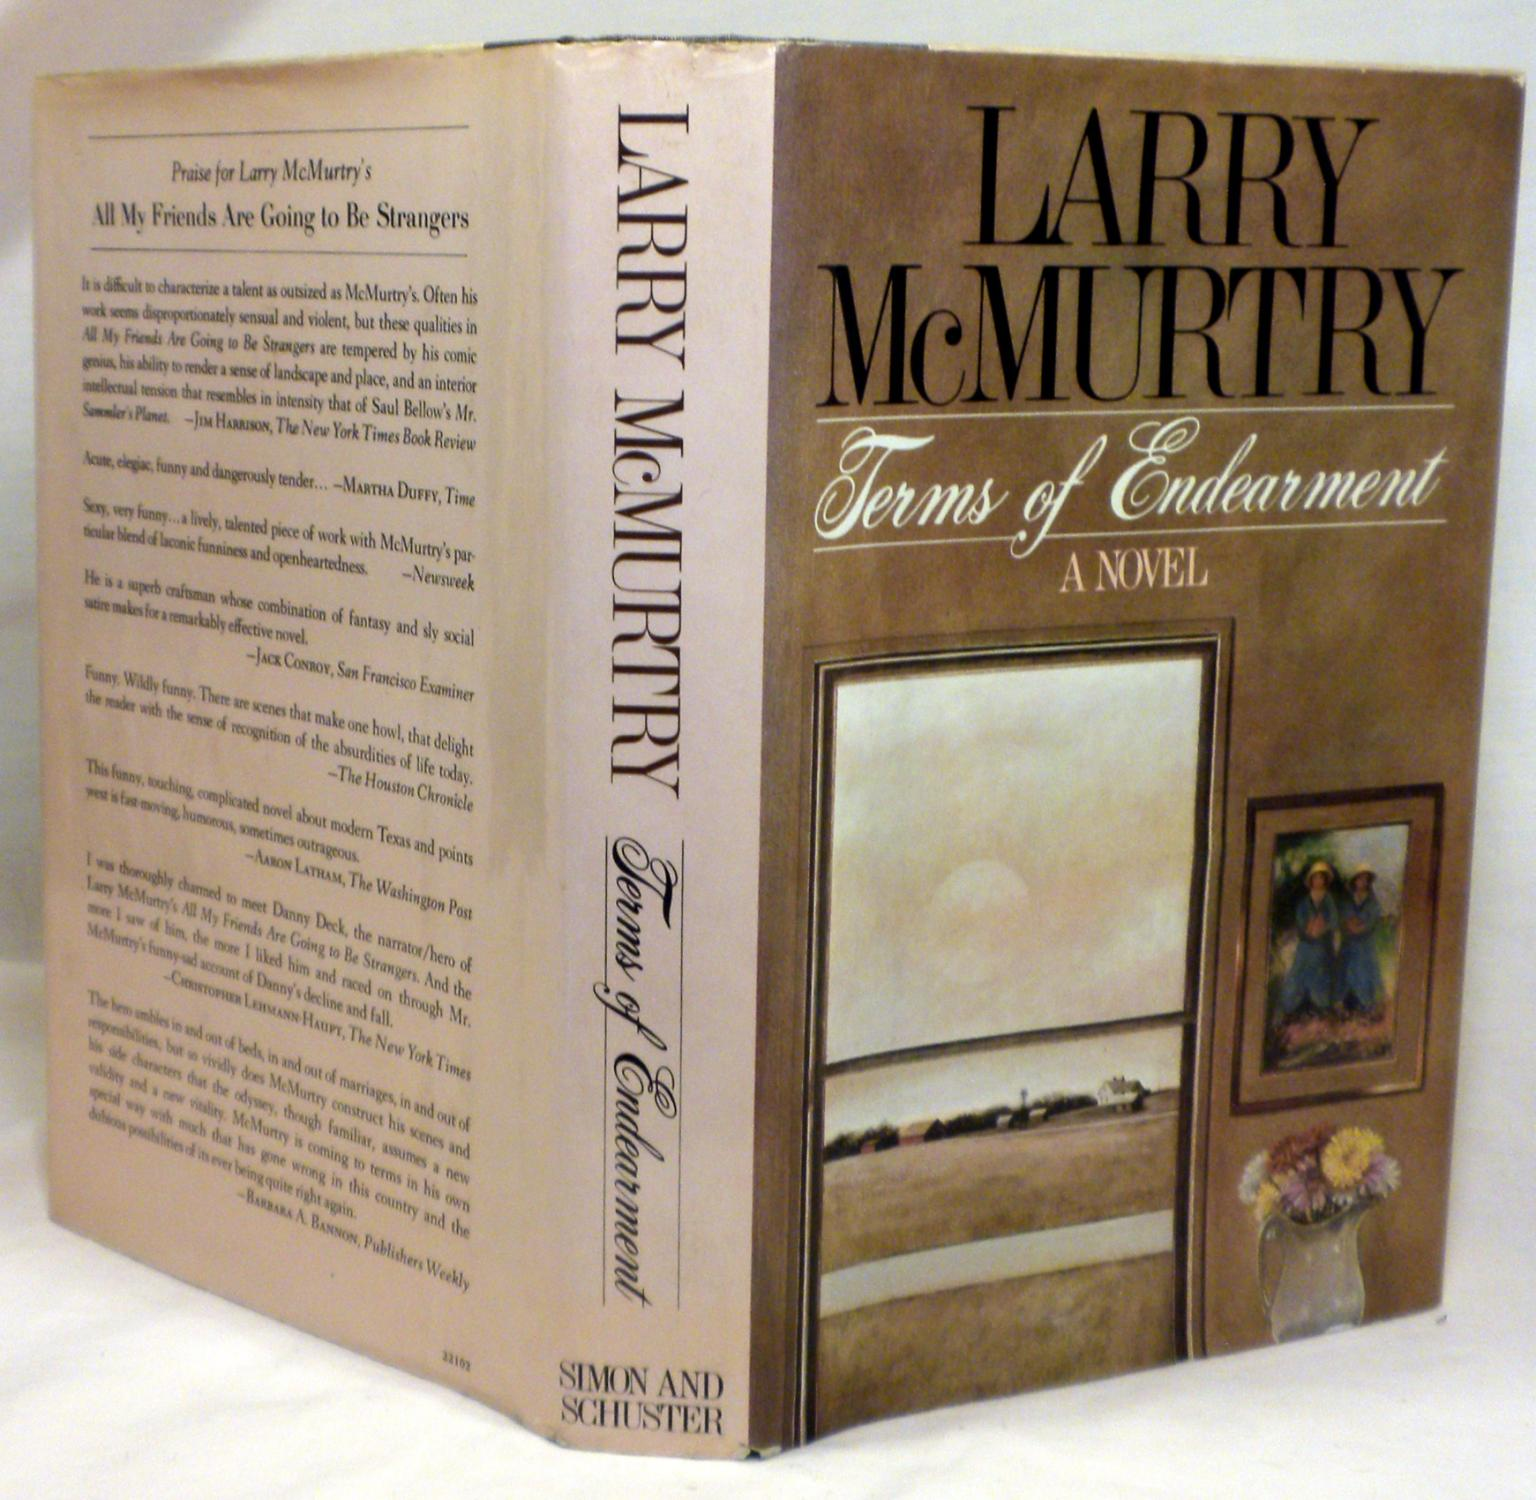 Terms of Endearment Larry McMurtry Very Good Hardcover SIGNED. First edition, first printing with complete number line starting with 1. Signed by Larry McMurtry to the front end-paper. Book is tight and sq